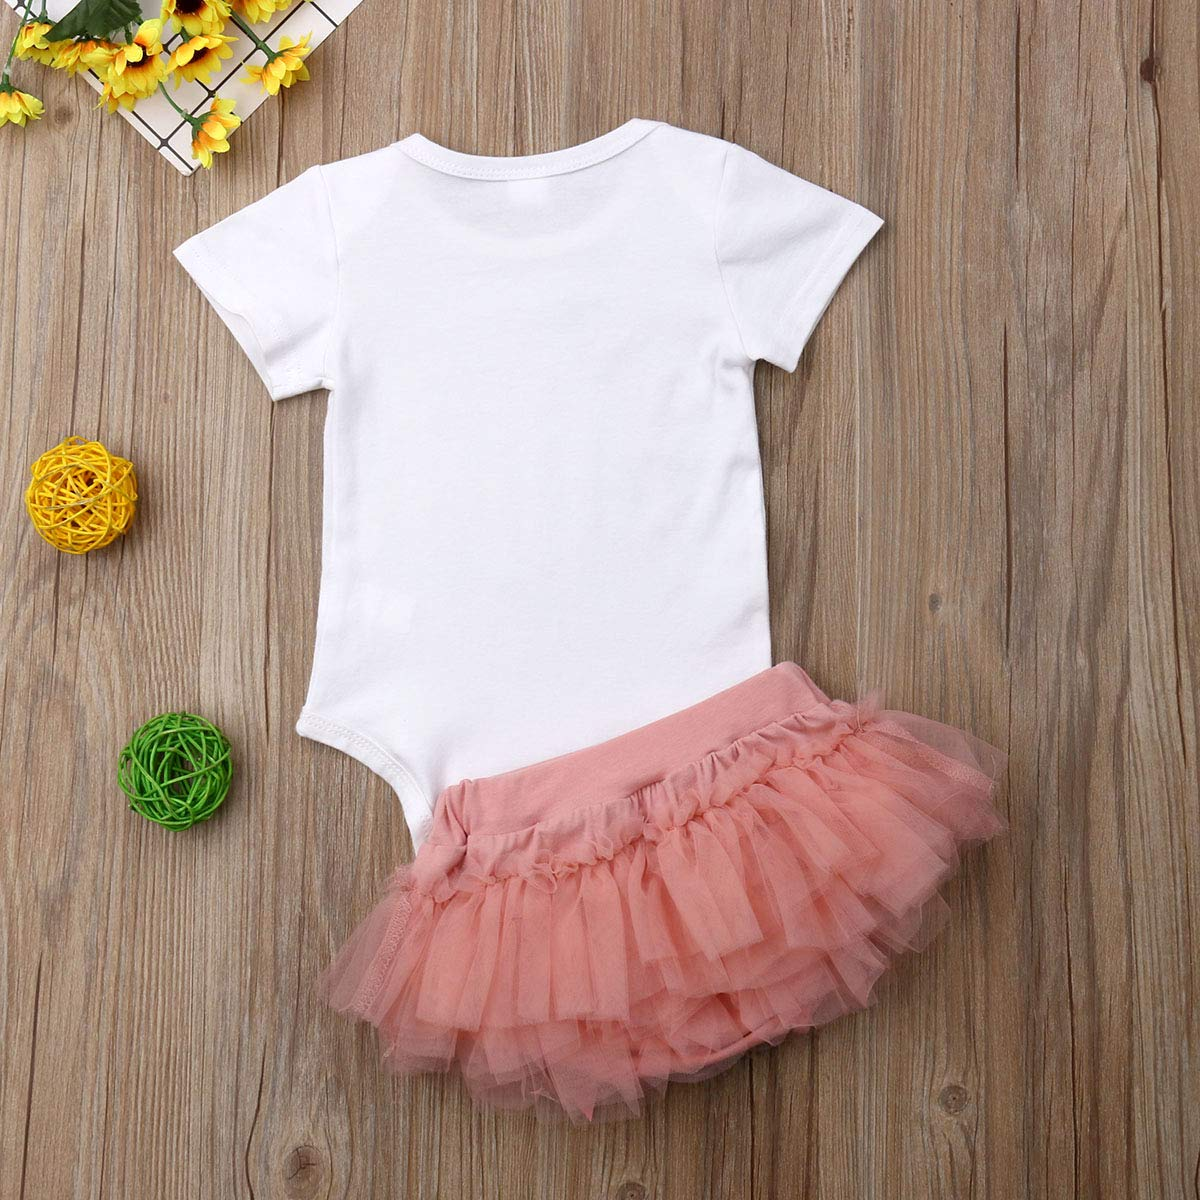 b6619e7f230 Amazon.com  Newborn Baby Girls Short Sleeve Romper Bodysuit Tops Bowknot Tulle  Tutu Skirts Headband 3pcs Summer Outfit 0-18M  Clothing